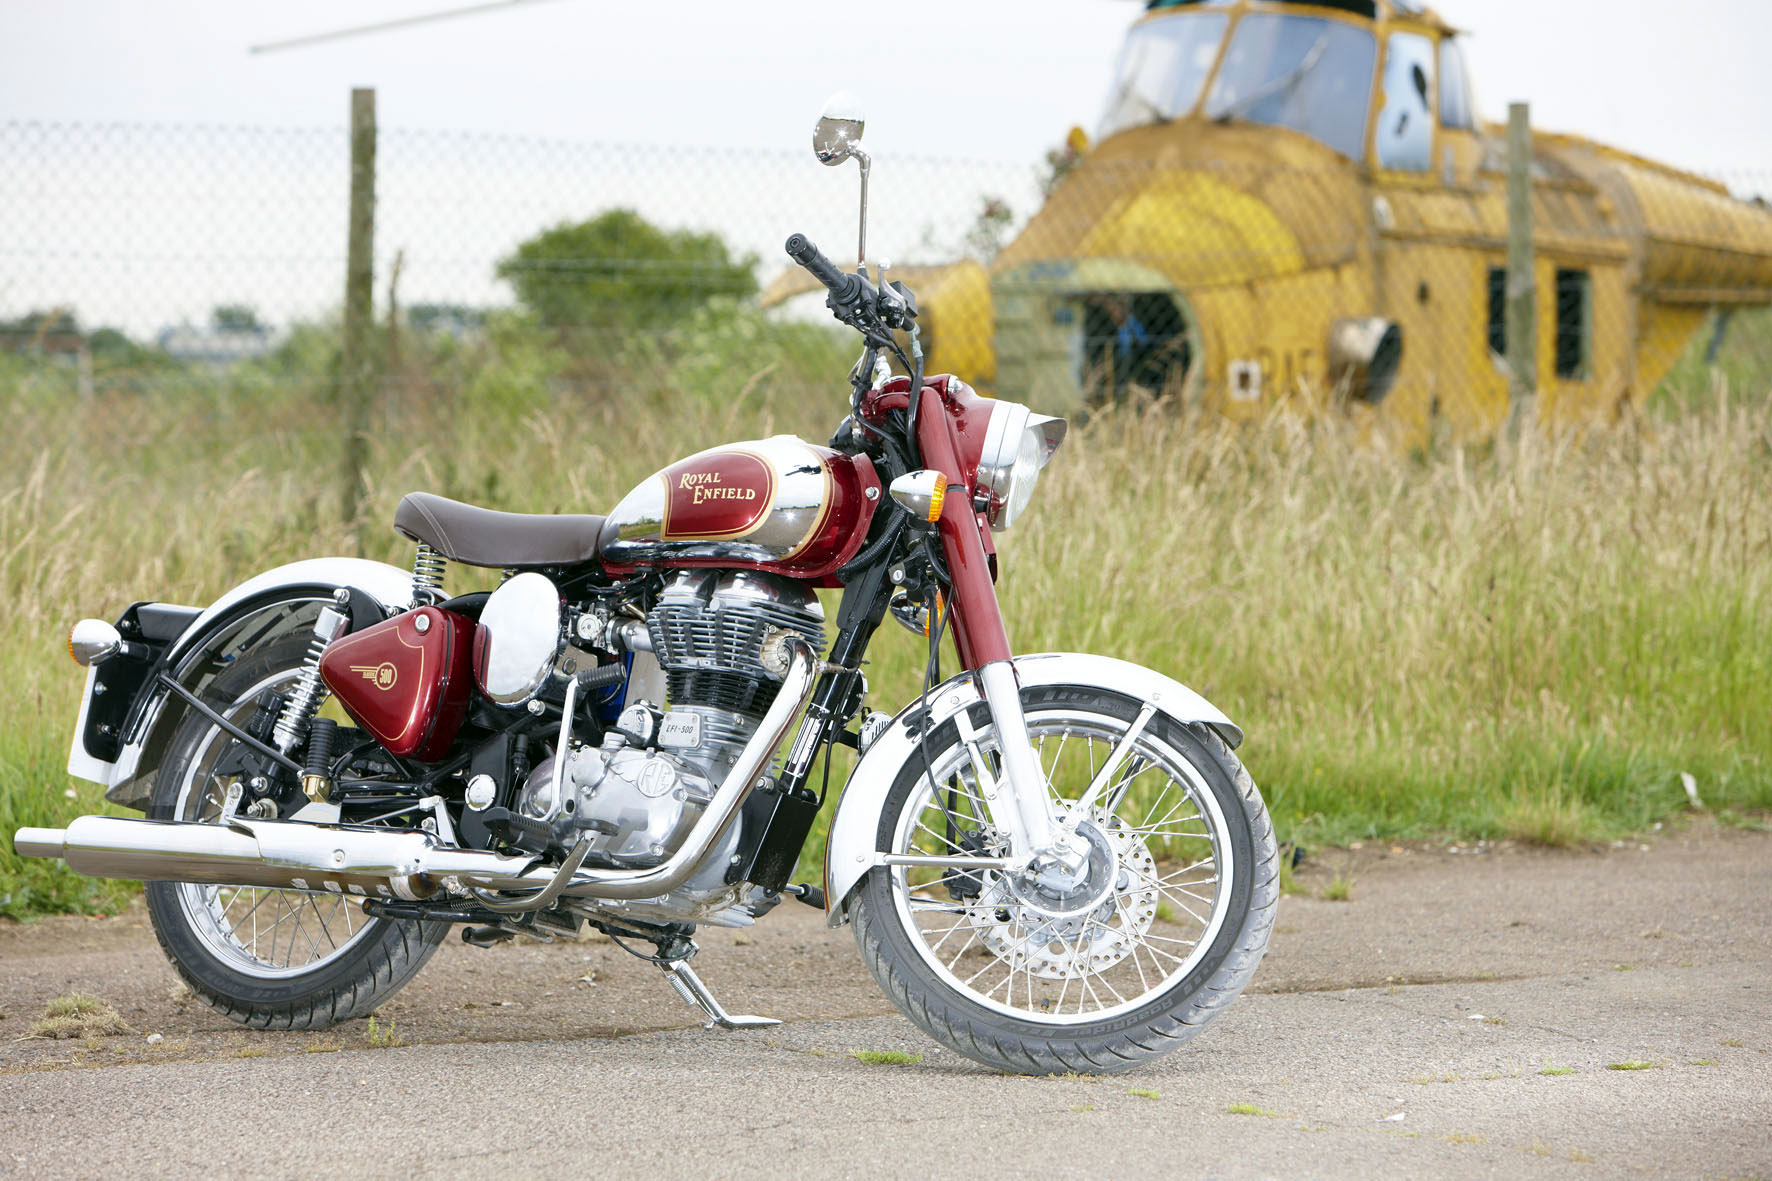 Bullet Bike Images In Hd: 2013 Royal Enfield Bullet C-5 Classic Chrome Wallpaper